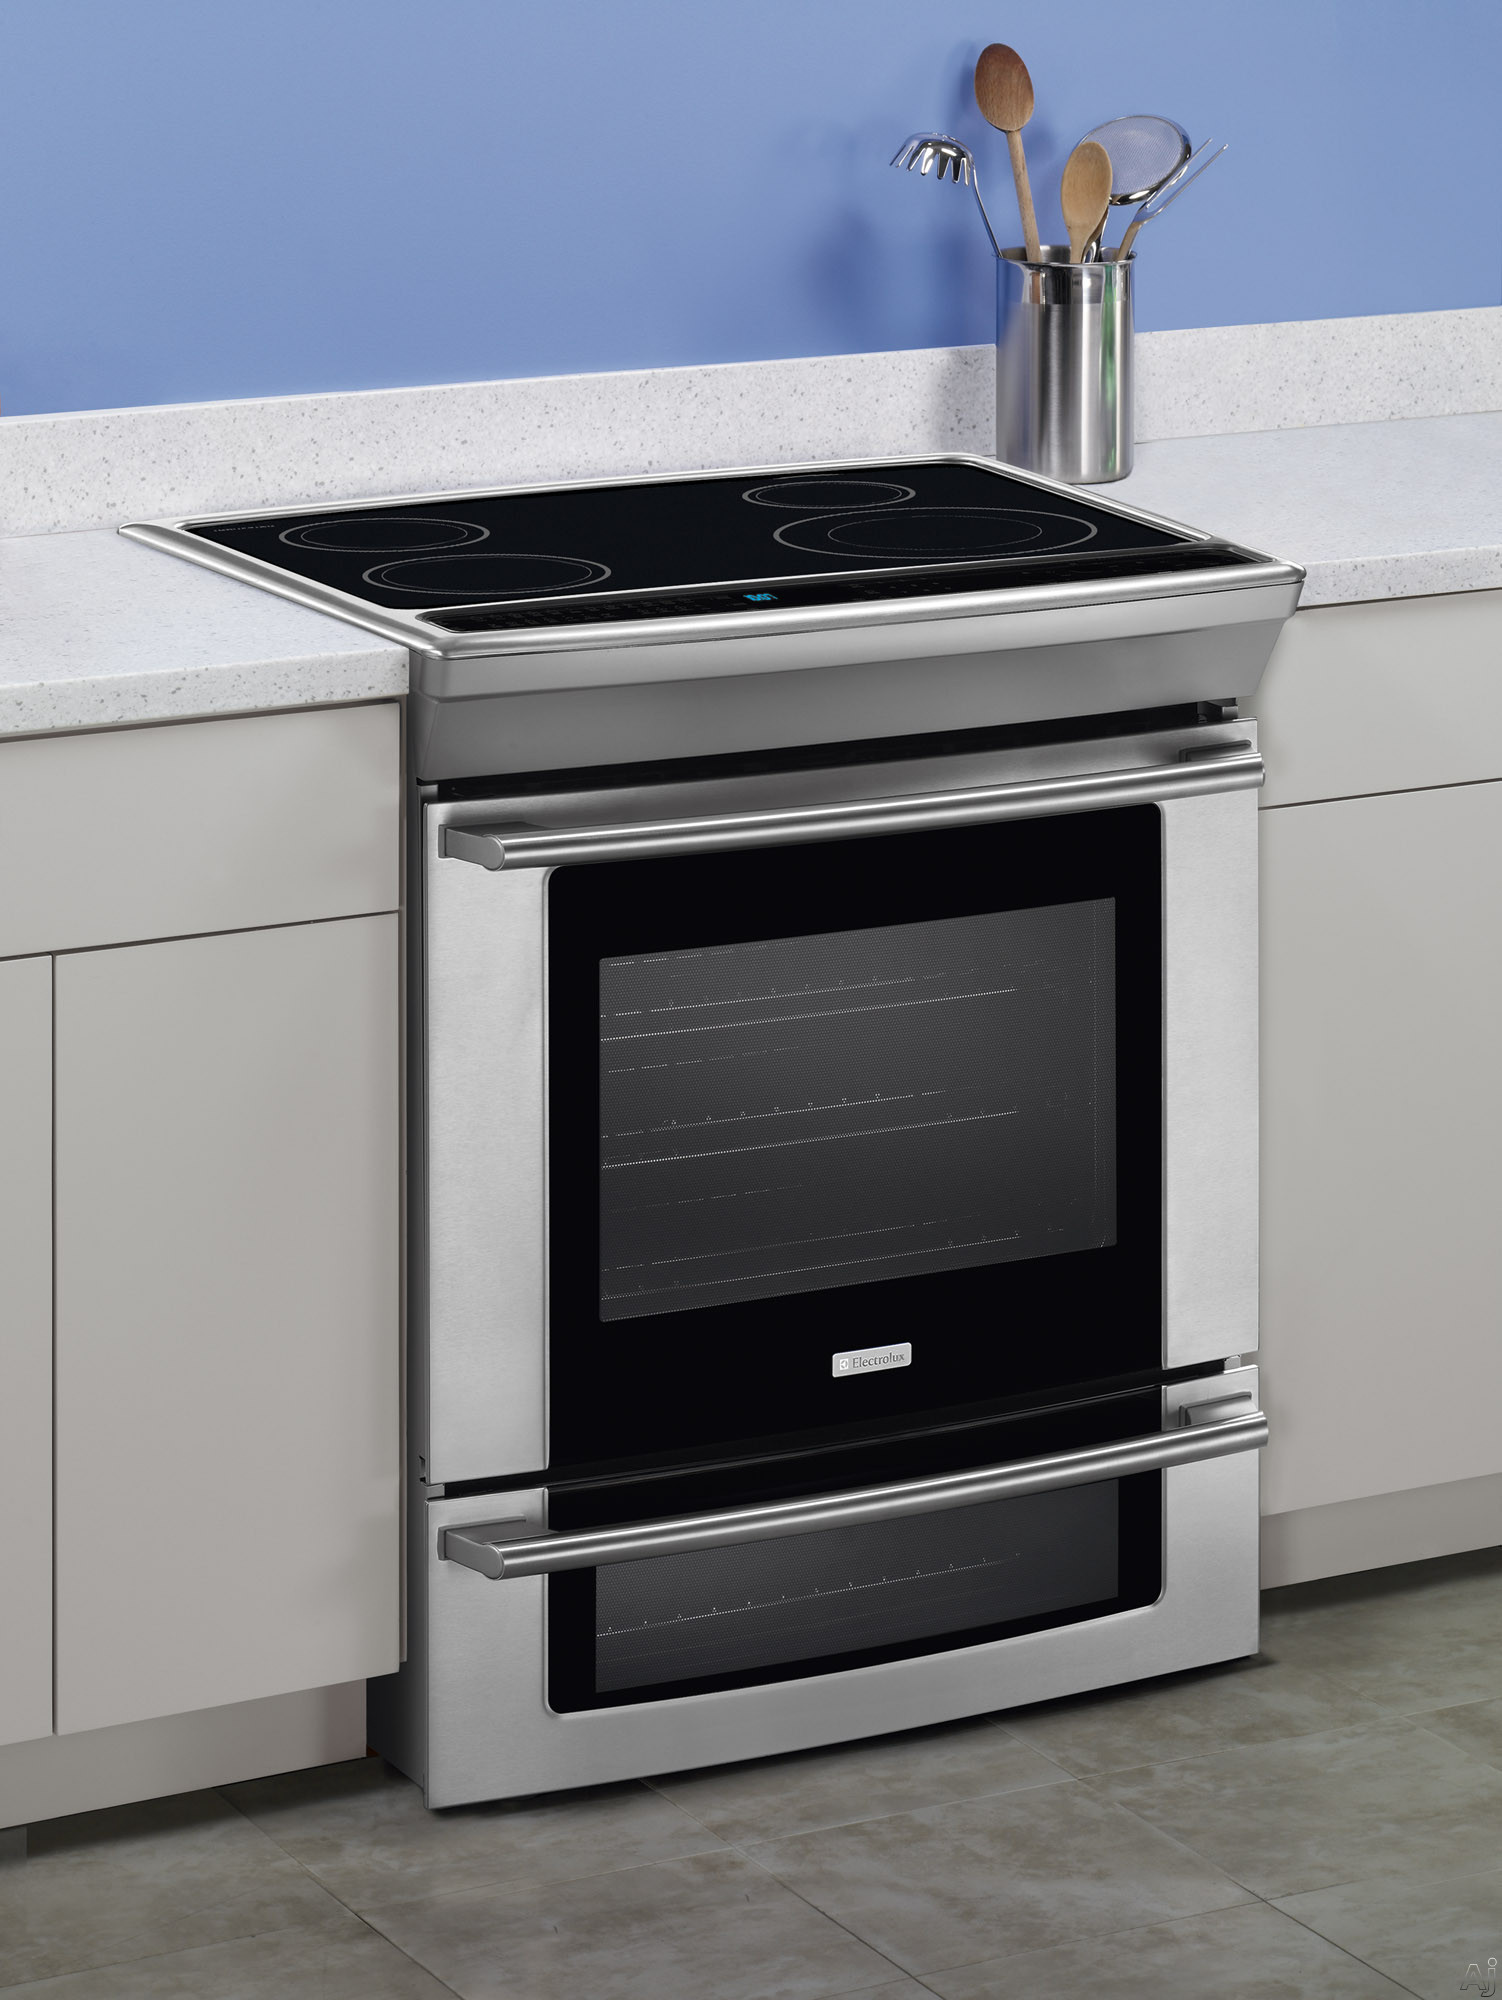 electrolux ew30is65js 30 slide in induction range with 4 2 cu ft self clean convection oven. Black Bedroom Furniture Sets. Home Design Ideas